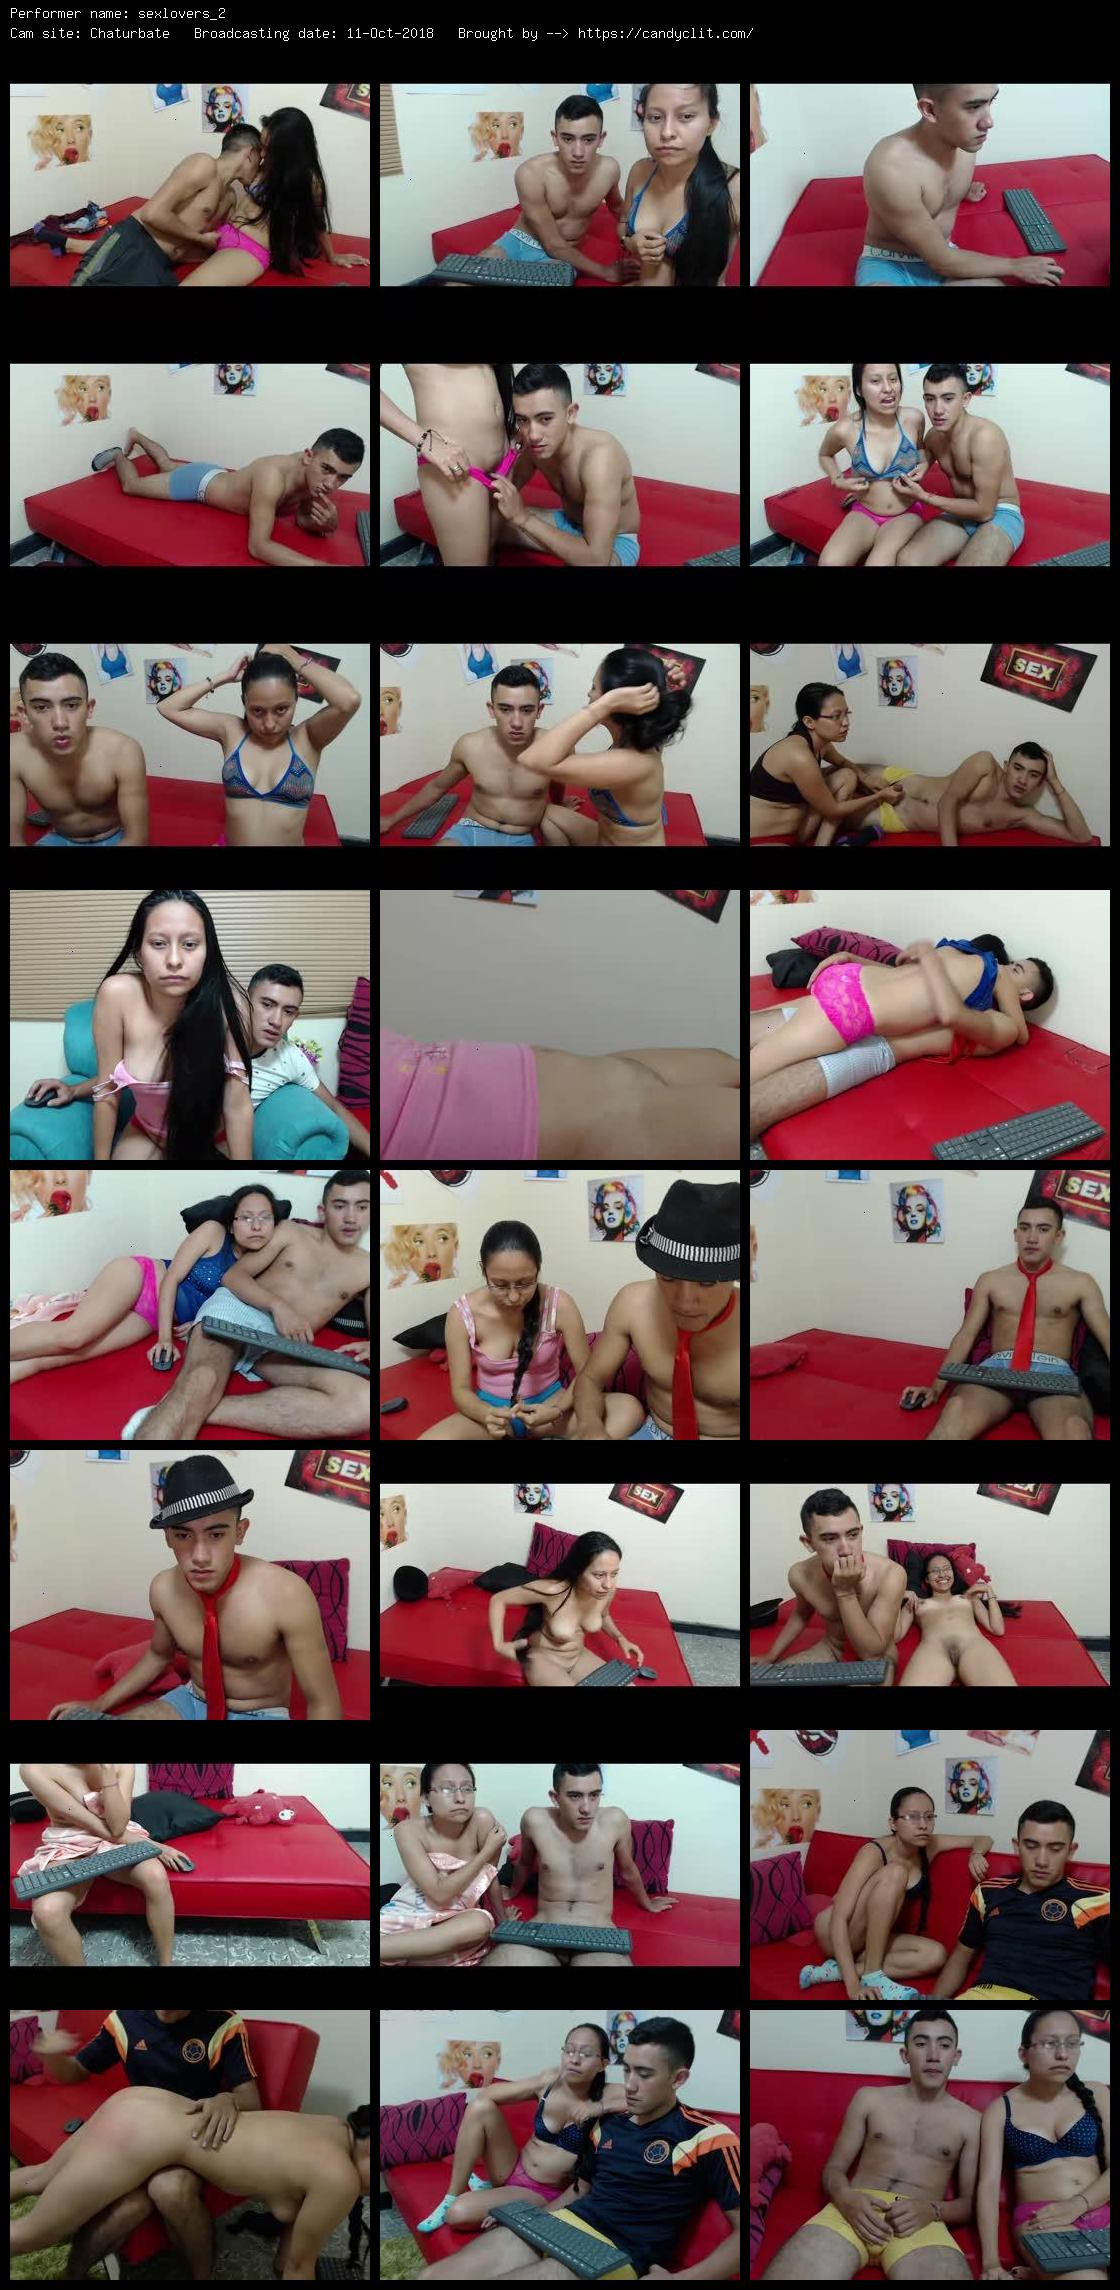 sexlovers_2's Show Preview